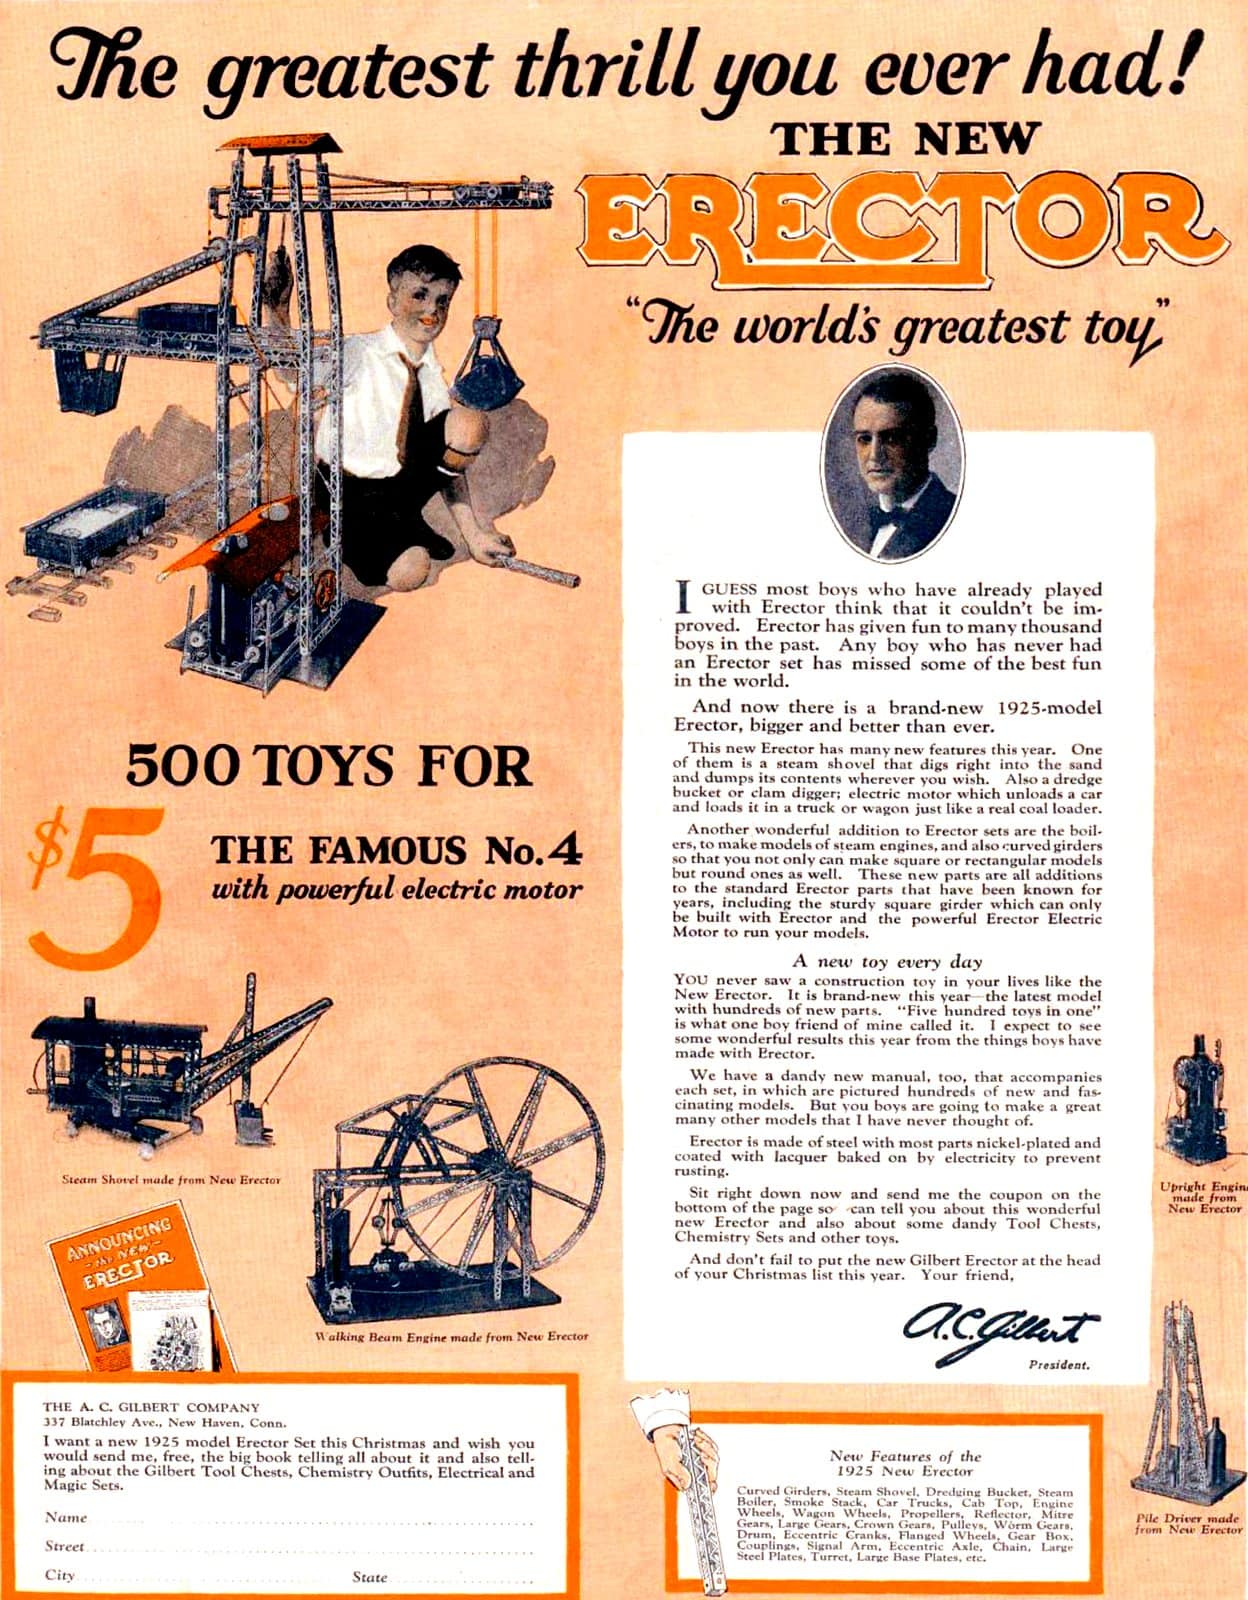 Erector set toy from 1924-1925